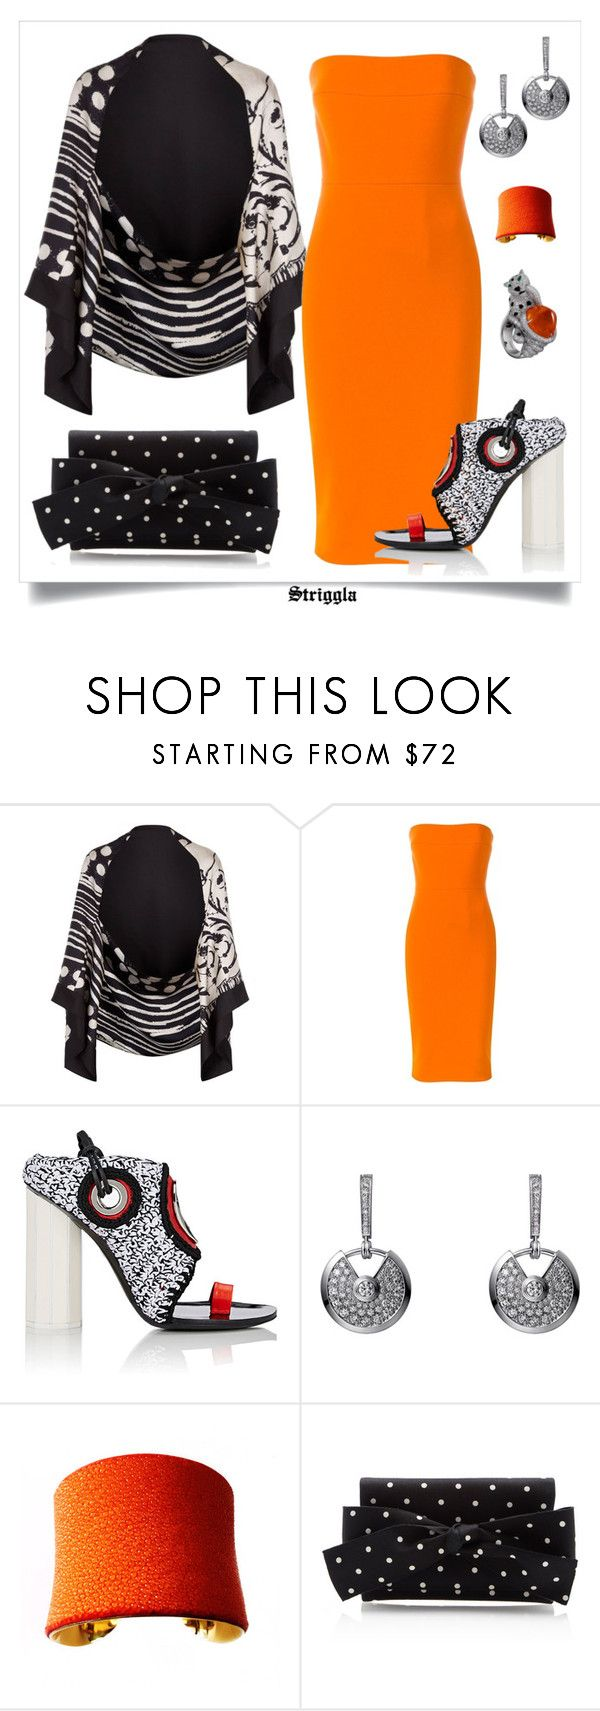 """party"" by striggla ❤ liked on Polyvore featuring Bianca Elgar, Victoria Beckham, Proenza Schouler, UNEARTHED, Oscar de la Renta, party, polyvoreeditorial and mi"